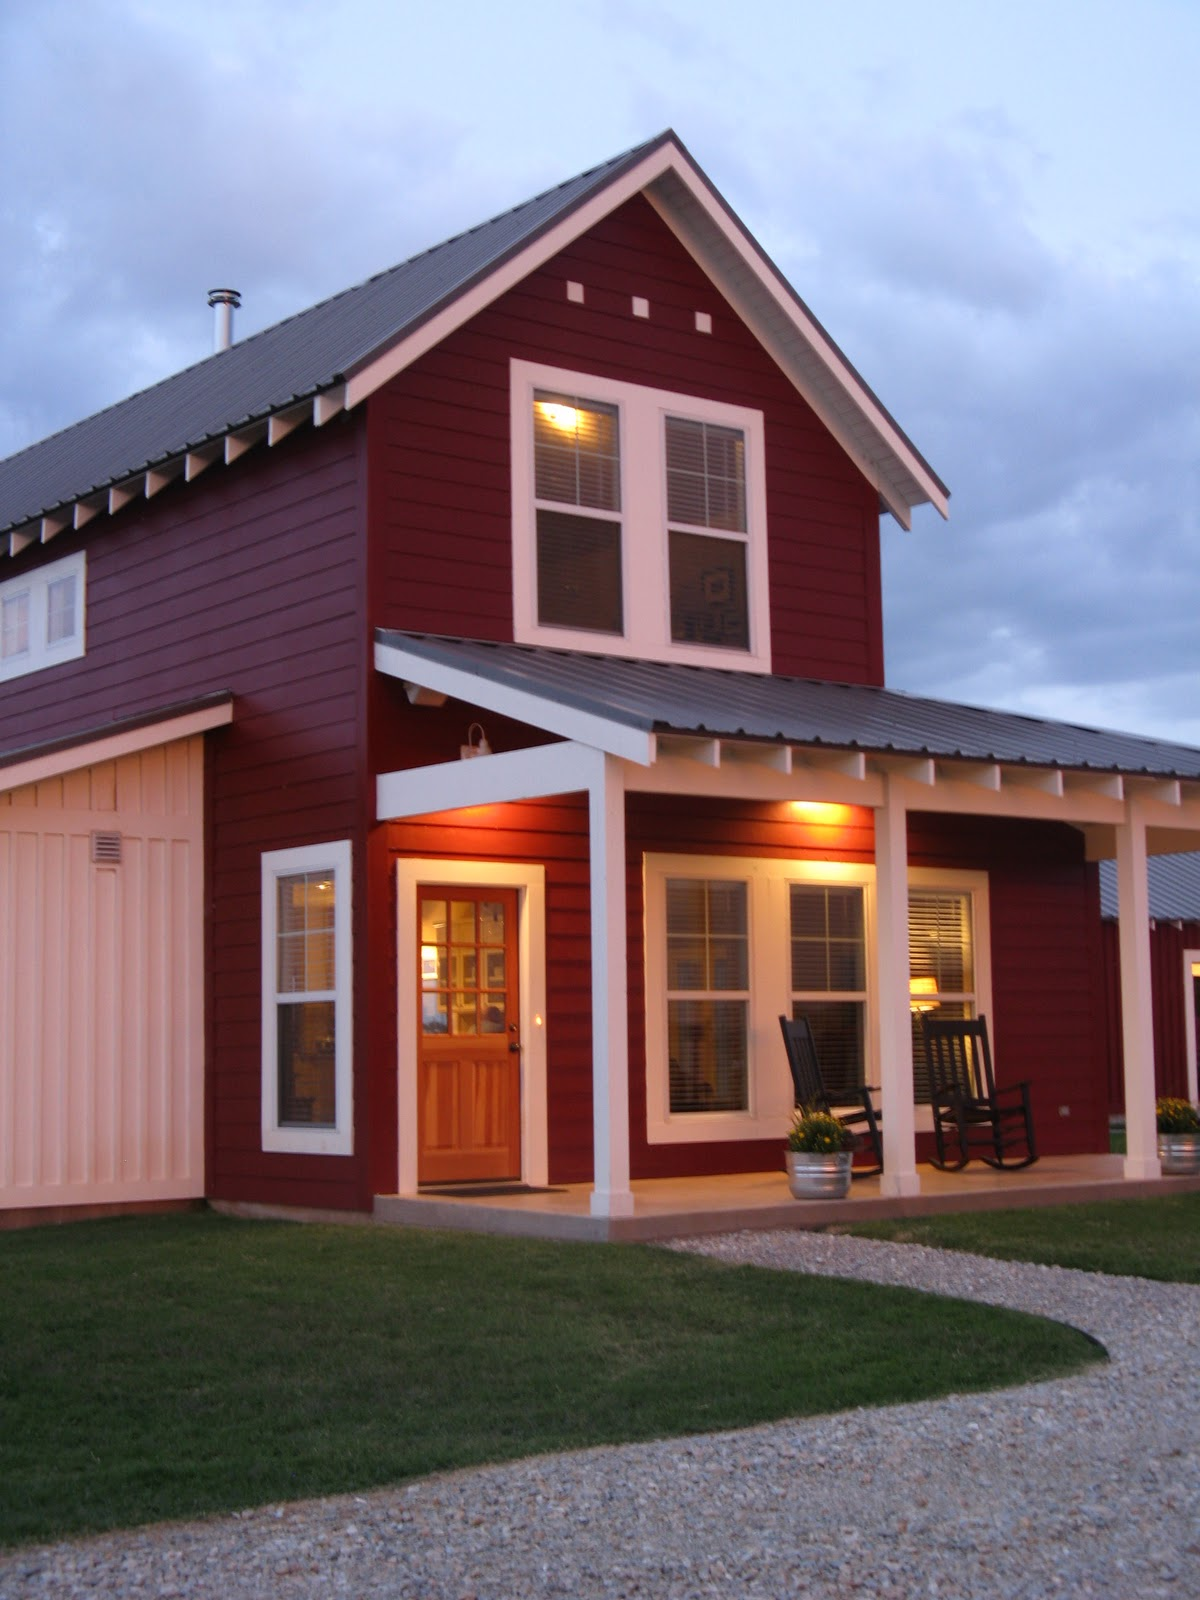 Farmhouse Exterior Colors With Metal Roof Everyday Ruralty Barn Chicks Blog Interview With Kim